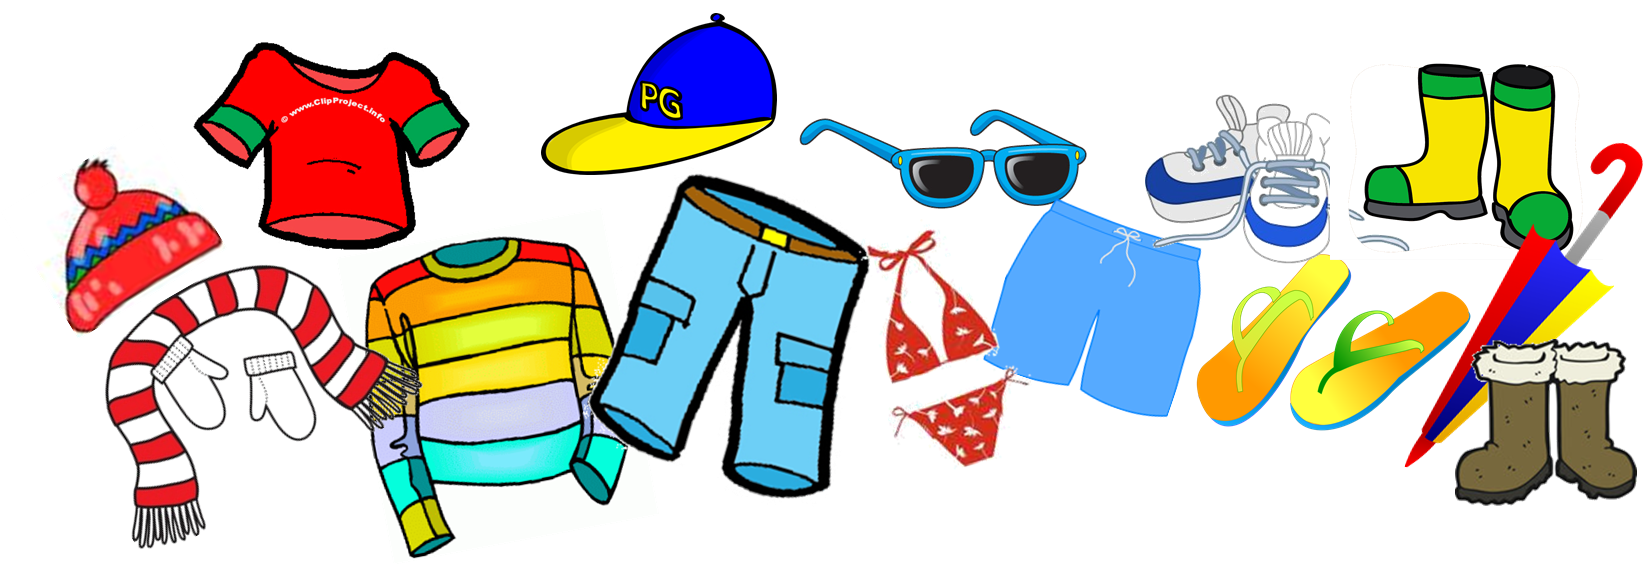 Jacket clipart hot weather clothing. Clothes images image group